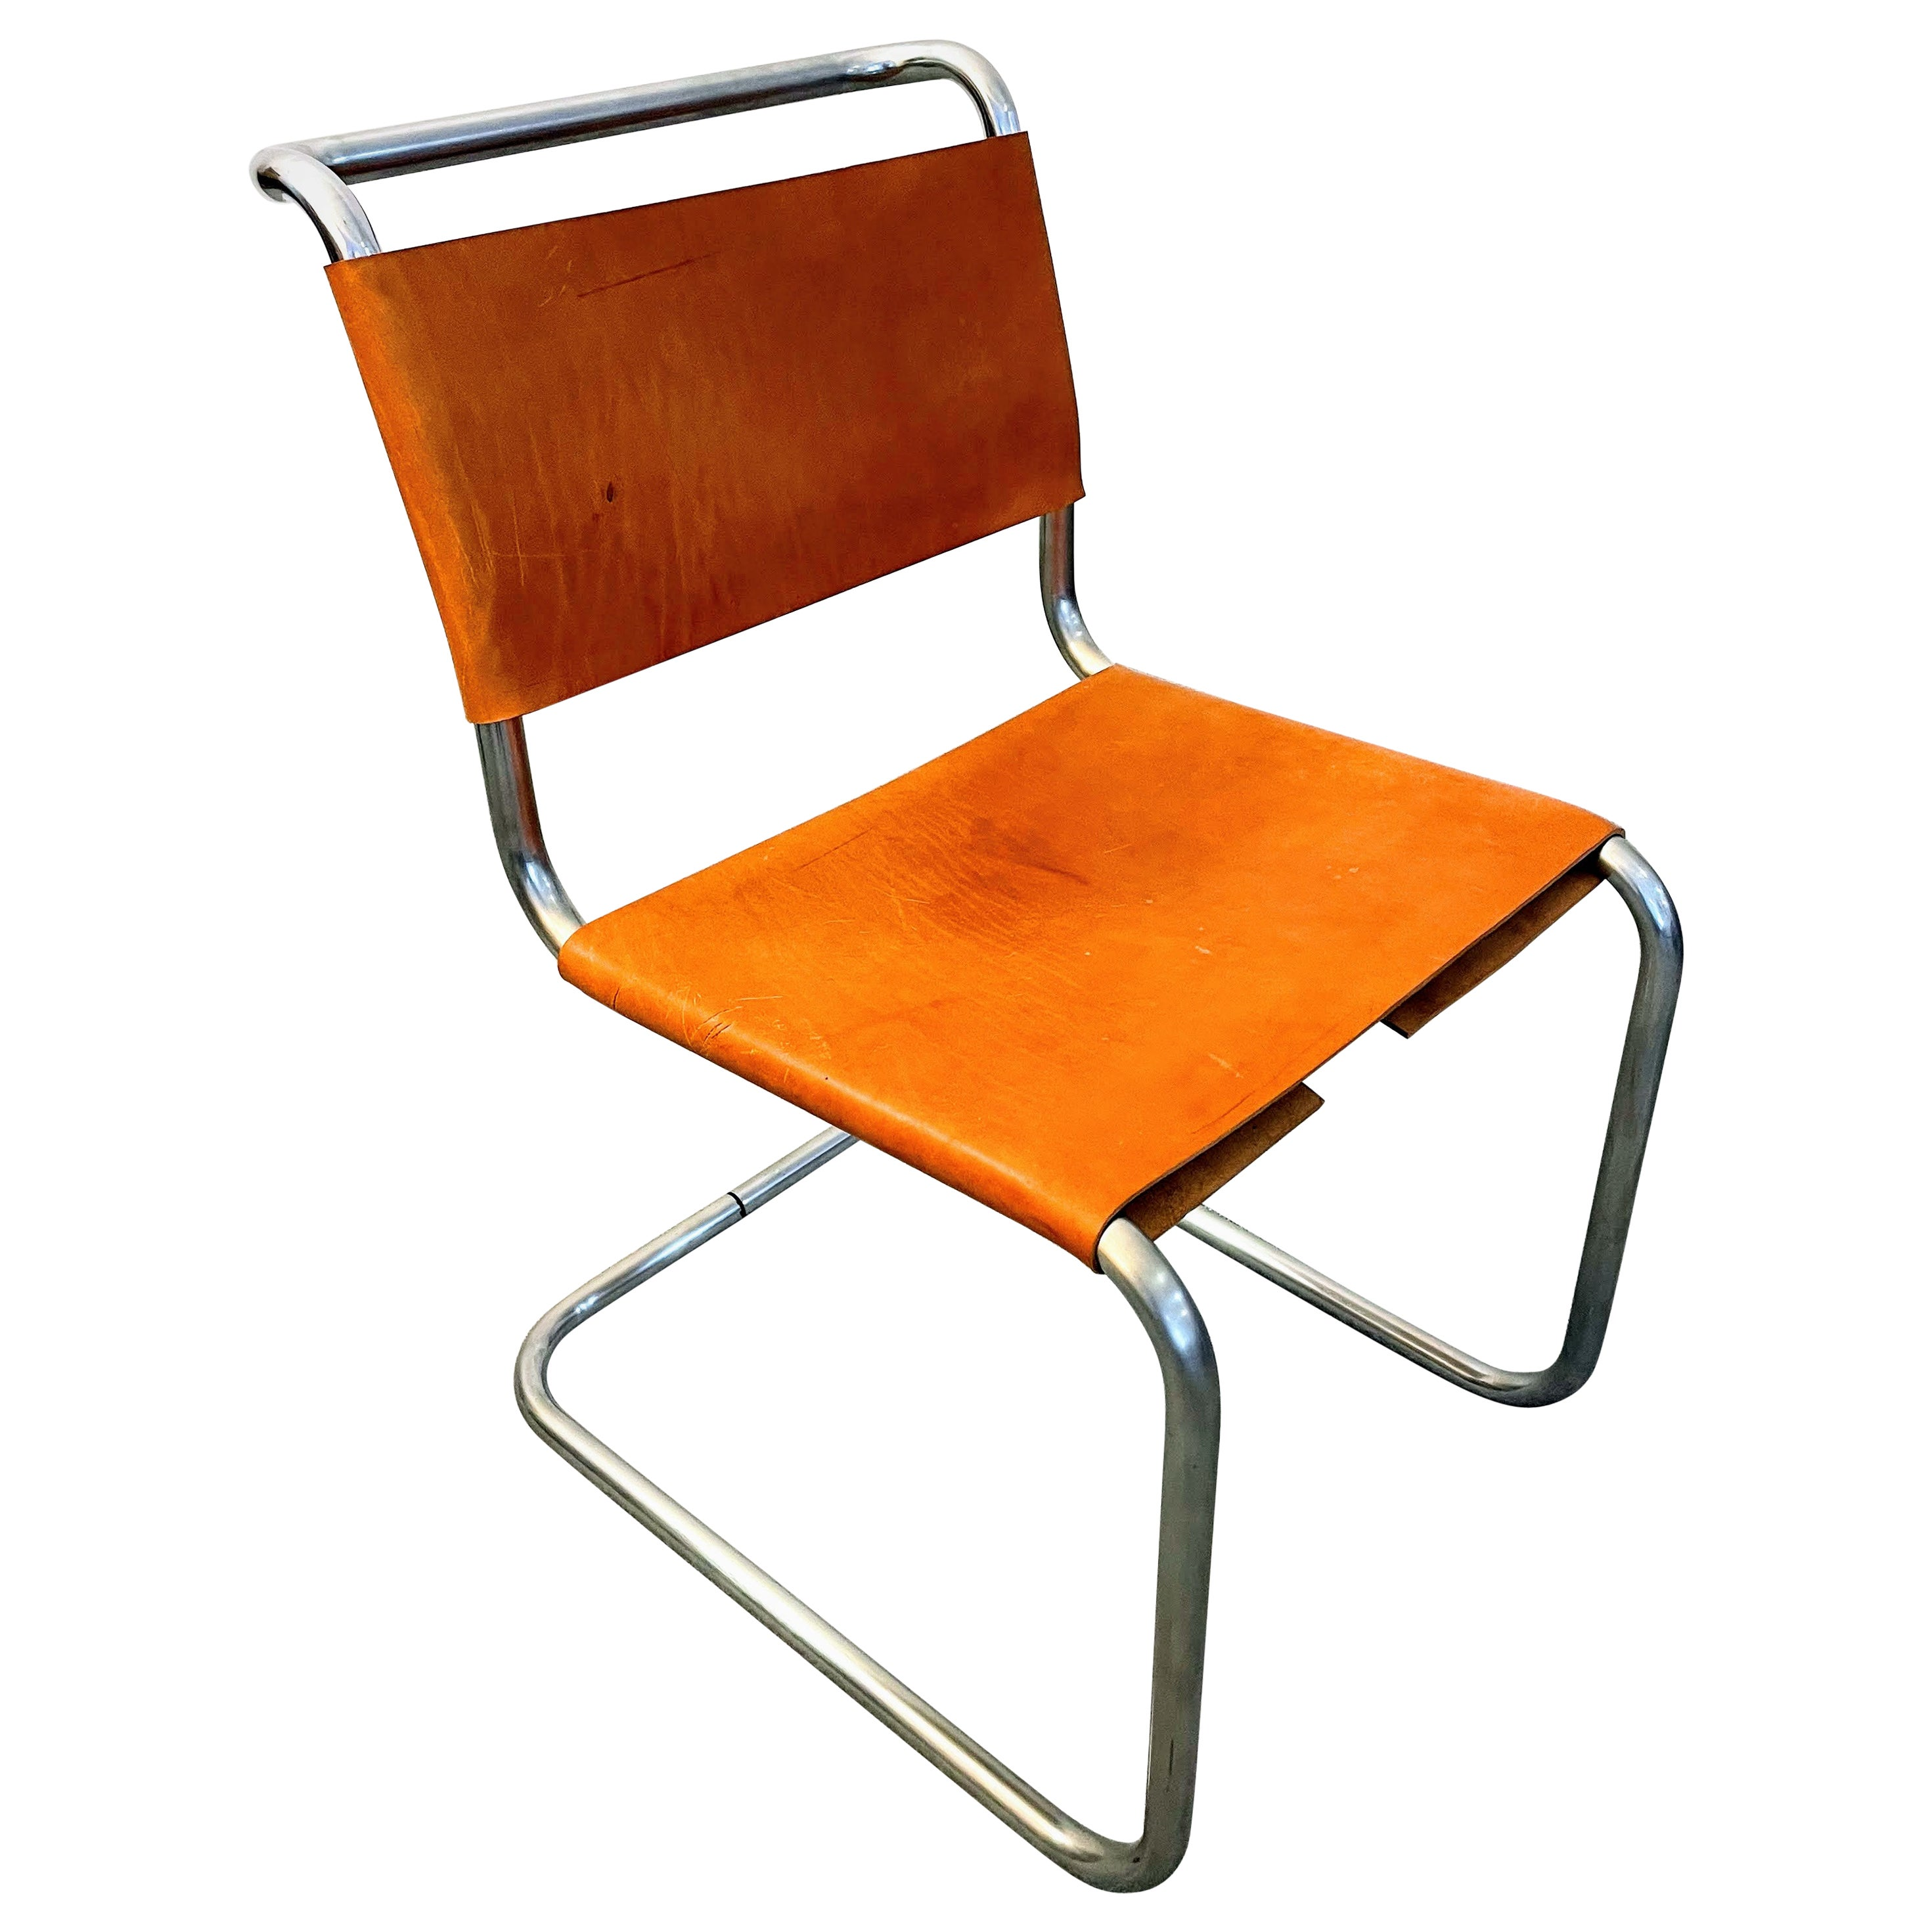 B33 Cantilevered Chair by Marcel Breuer